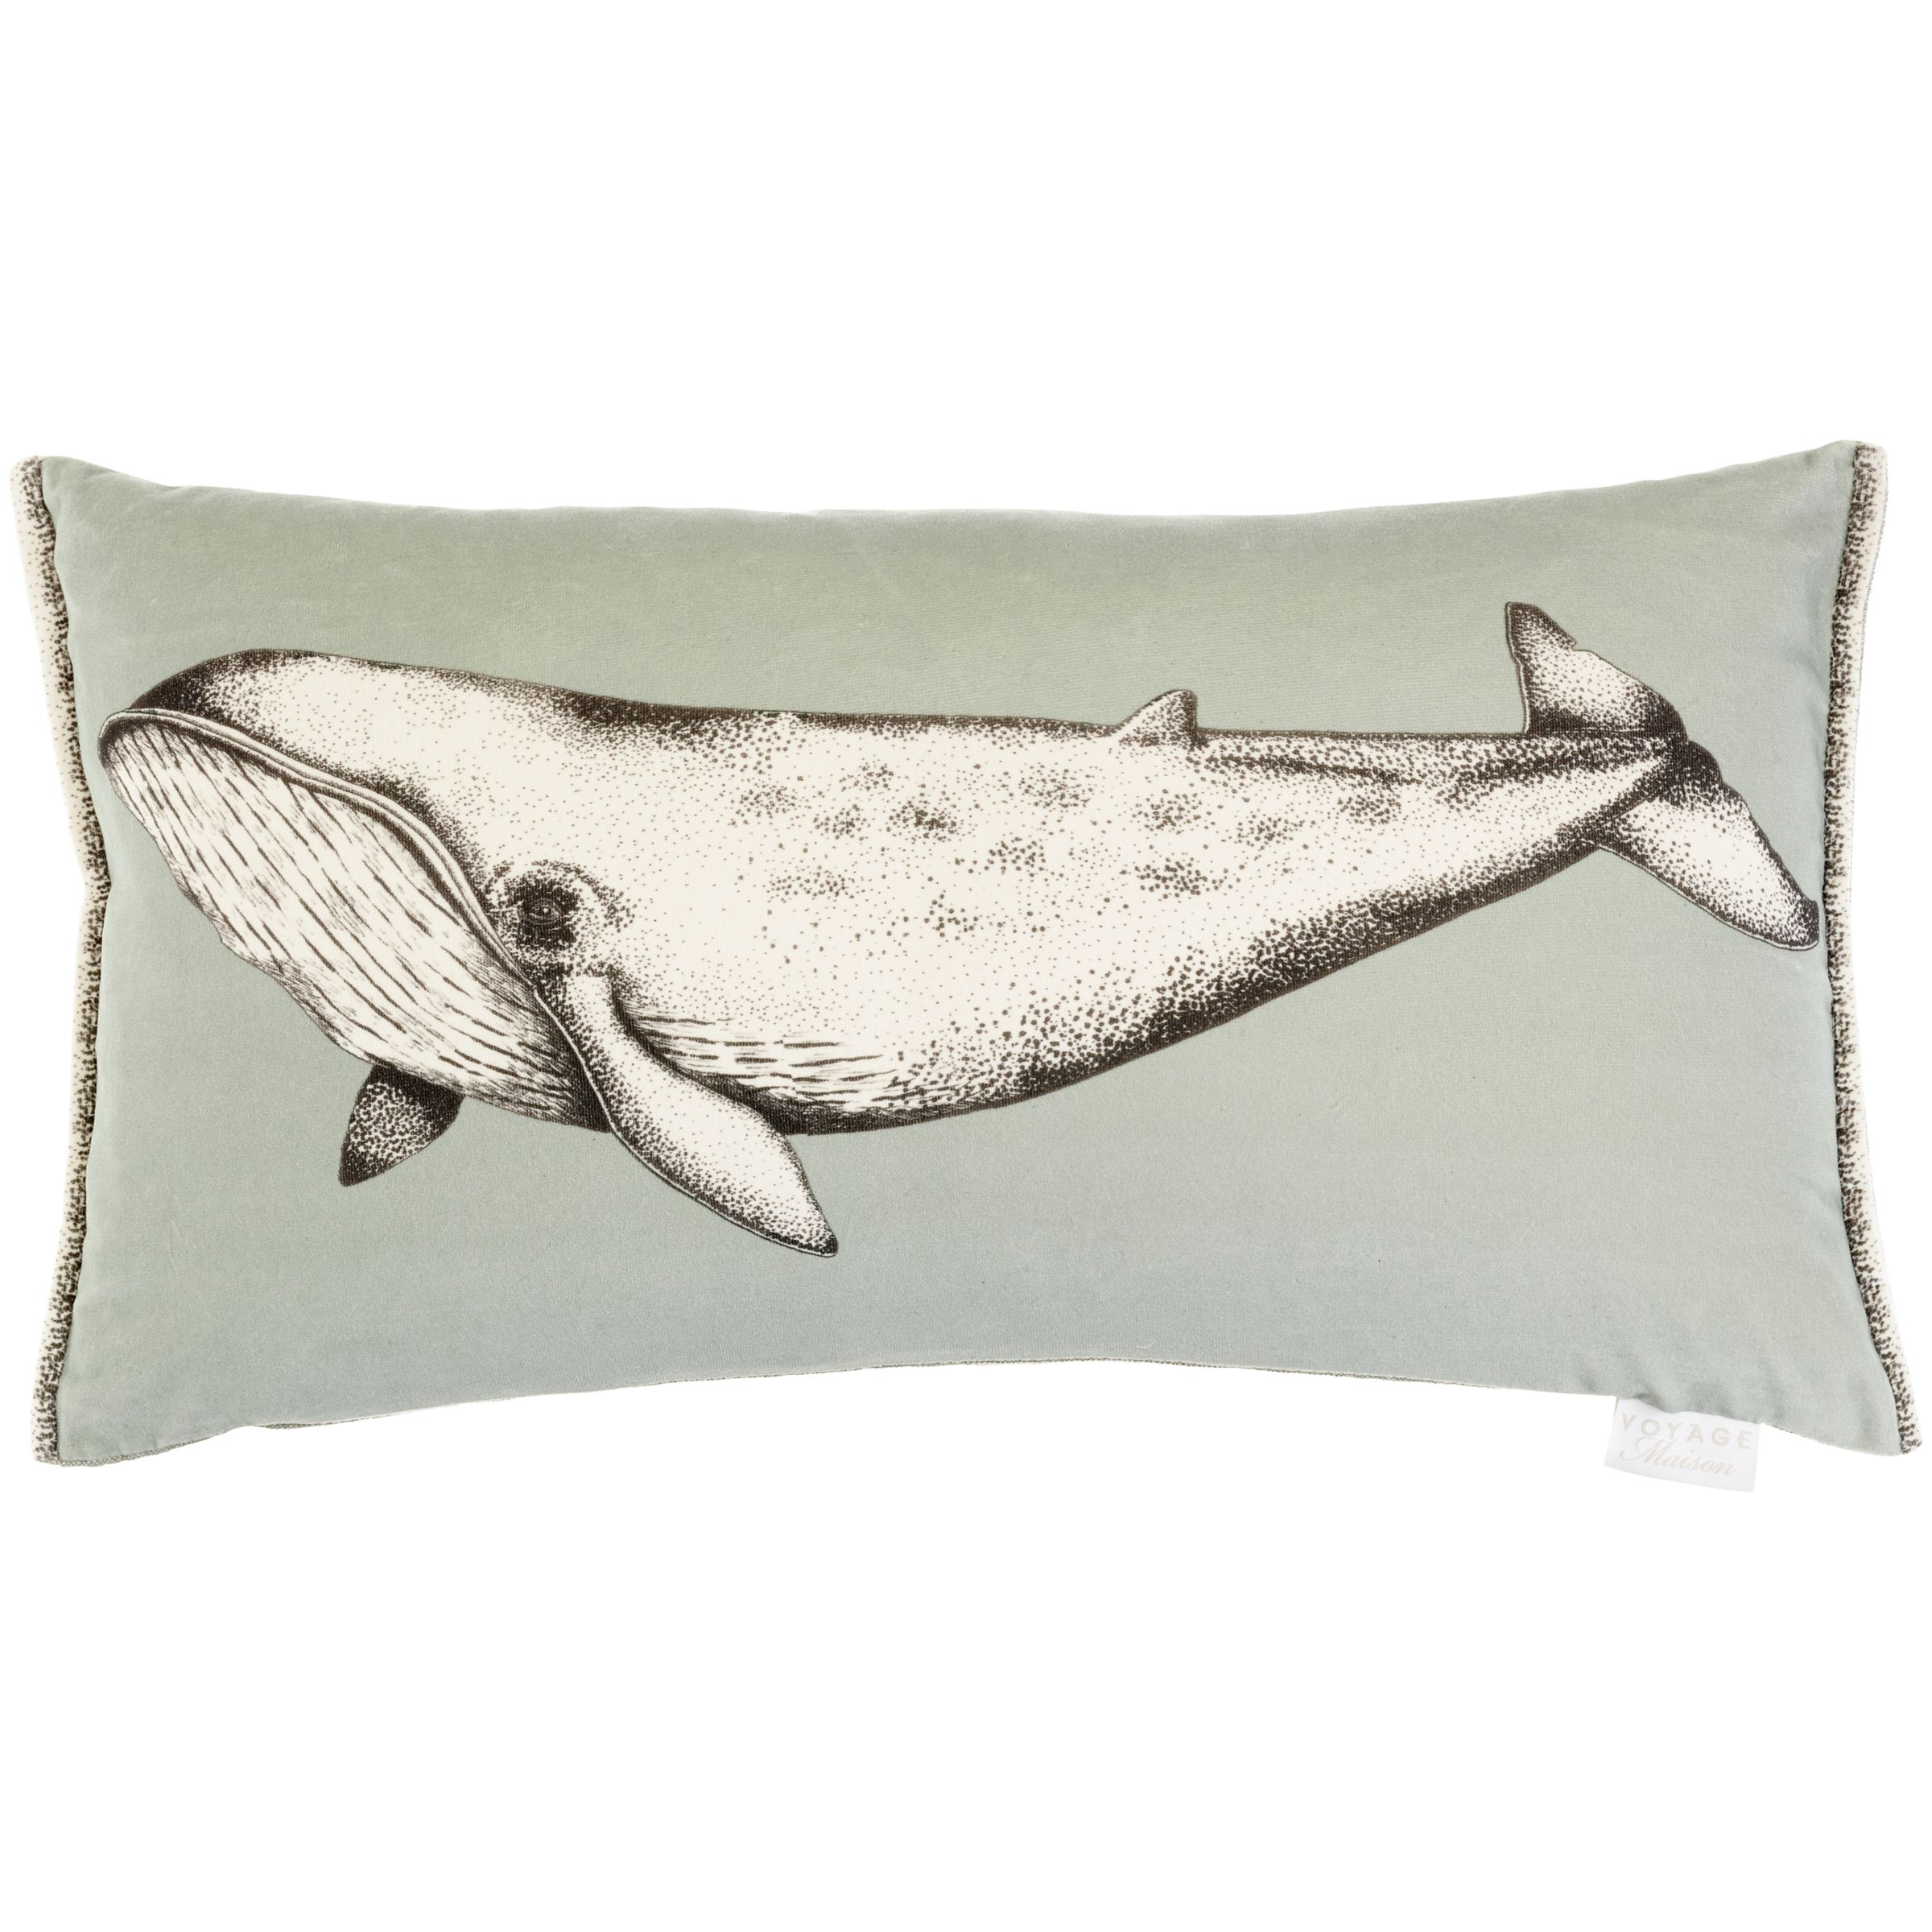 Voyage Voyage Blue Whale Cushion